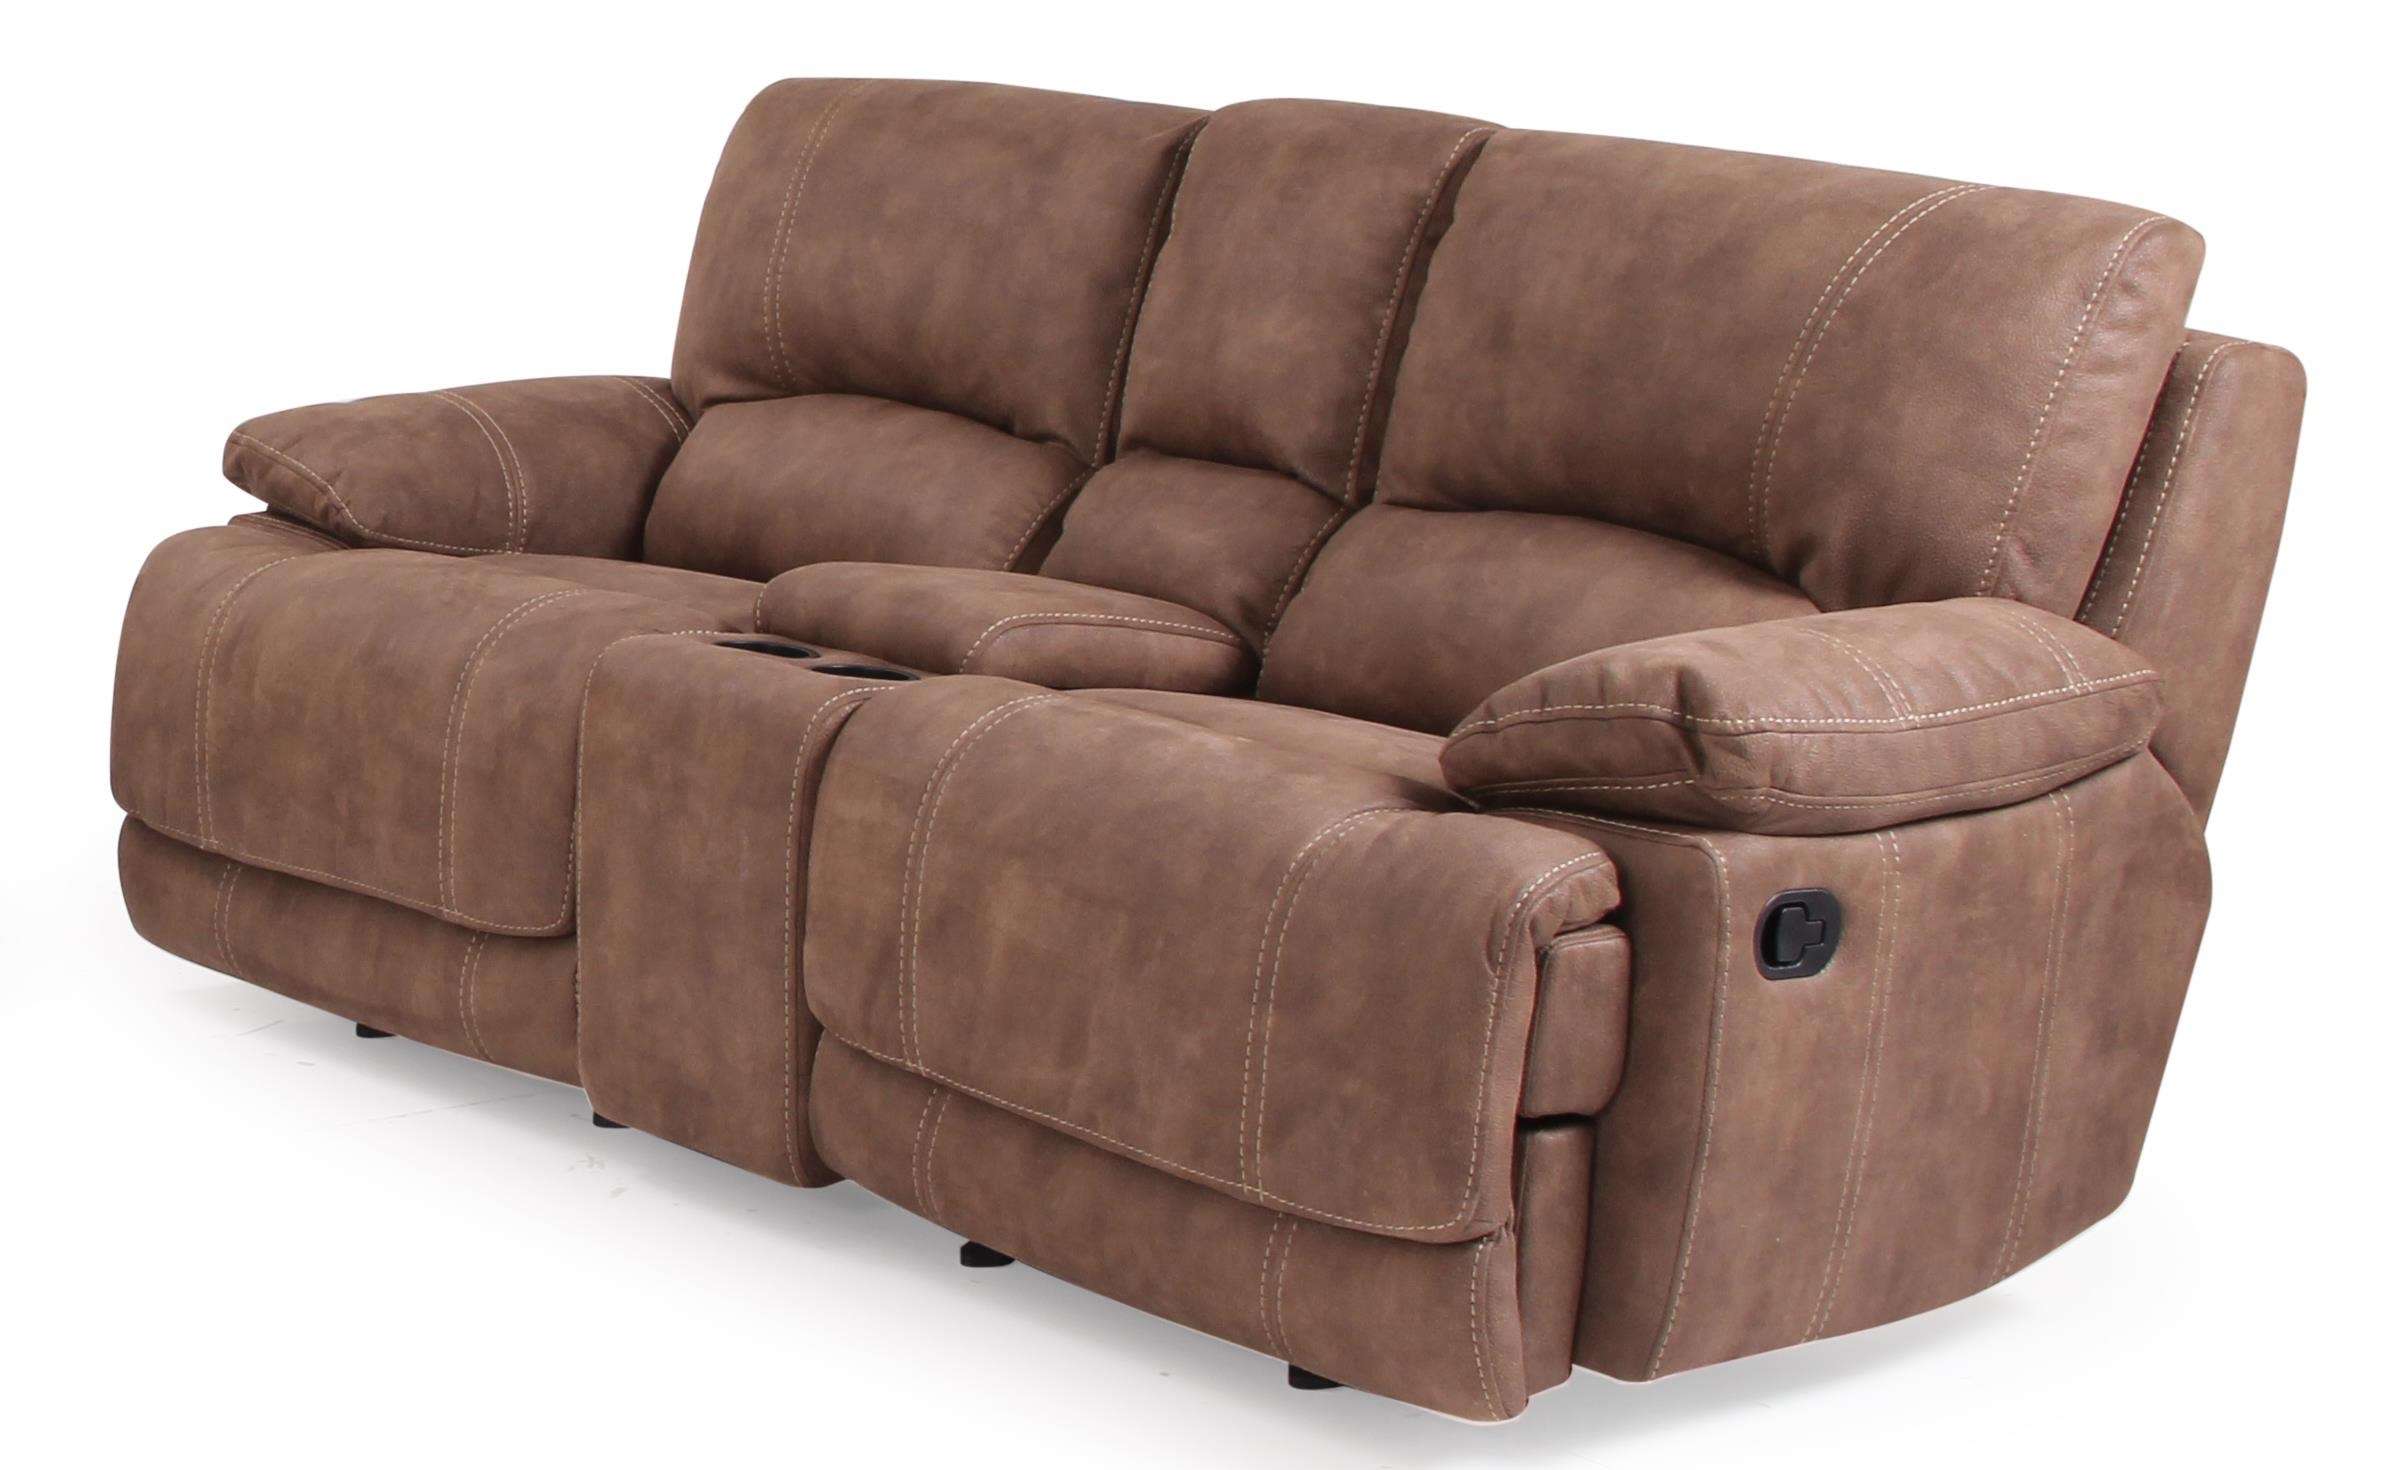 8861M MANUAL - MOTION Glider Console Love Seat w/ USB by Cheers Sofa at Westrich Furniture & Appliances